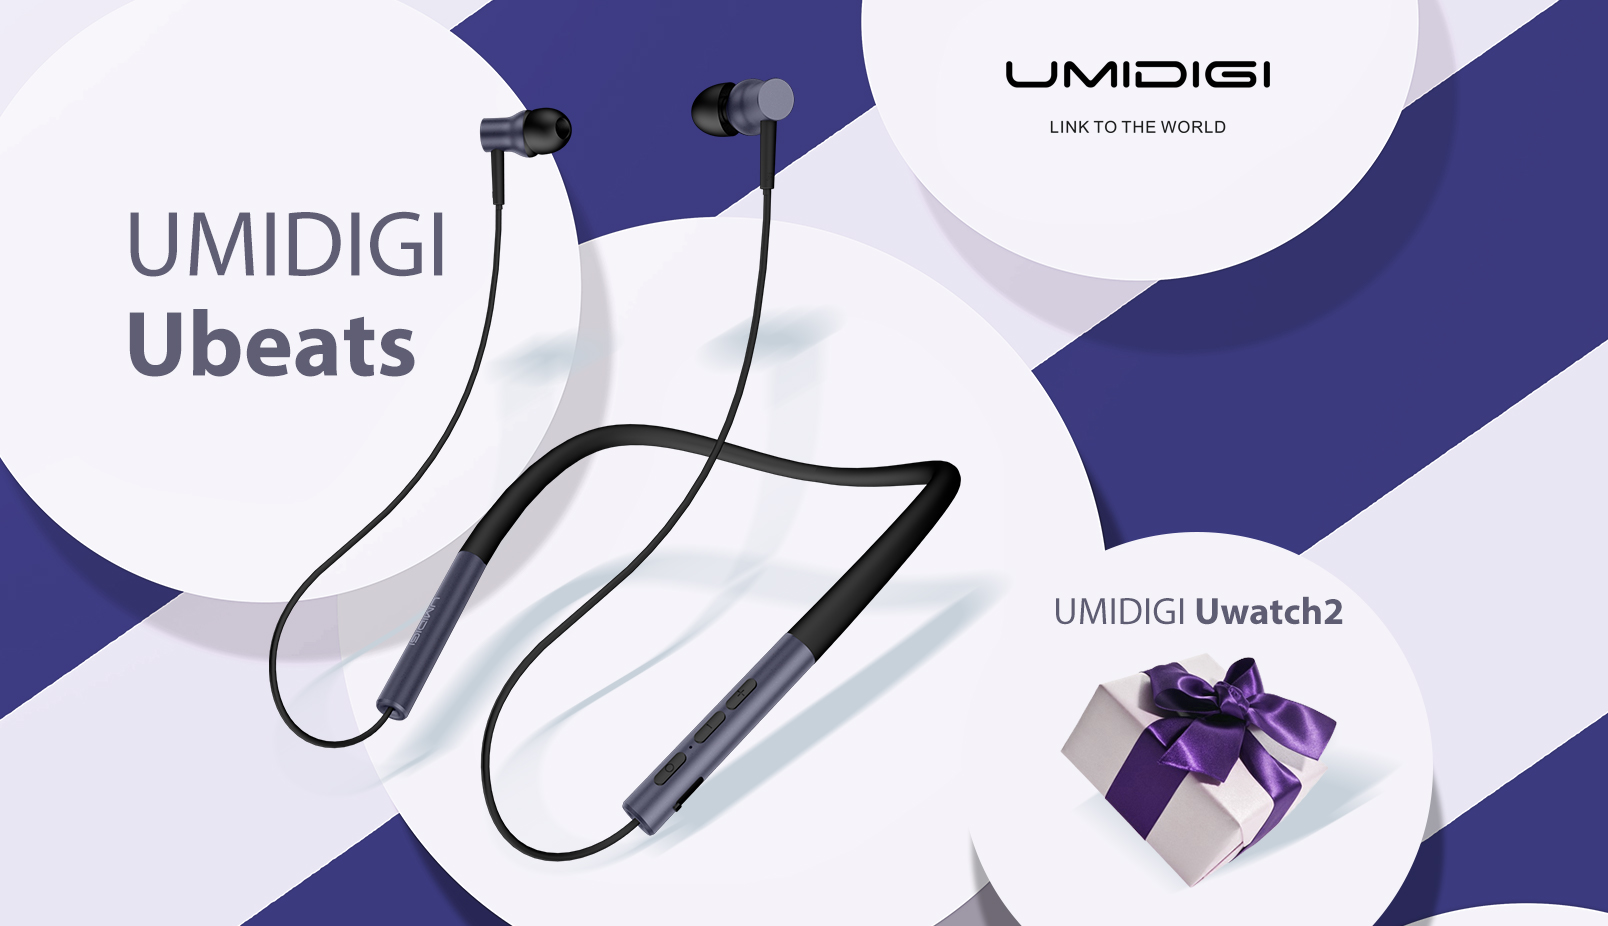 Enter for your chance to win 1 of 10 UMIDIGI Ubeats earphones, 10 UMIDIGI Uwatch2 and 10 UMIDIGI Tripod Selfie Stick for a total of 30 winners!